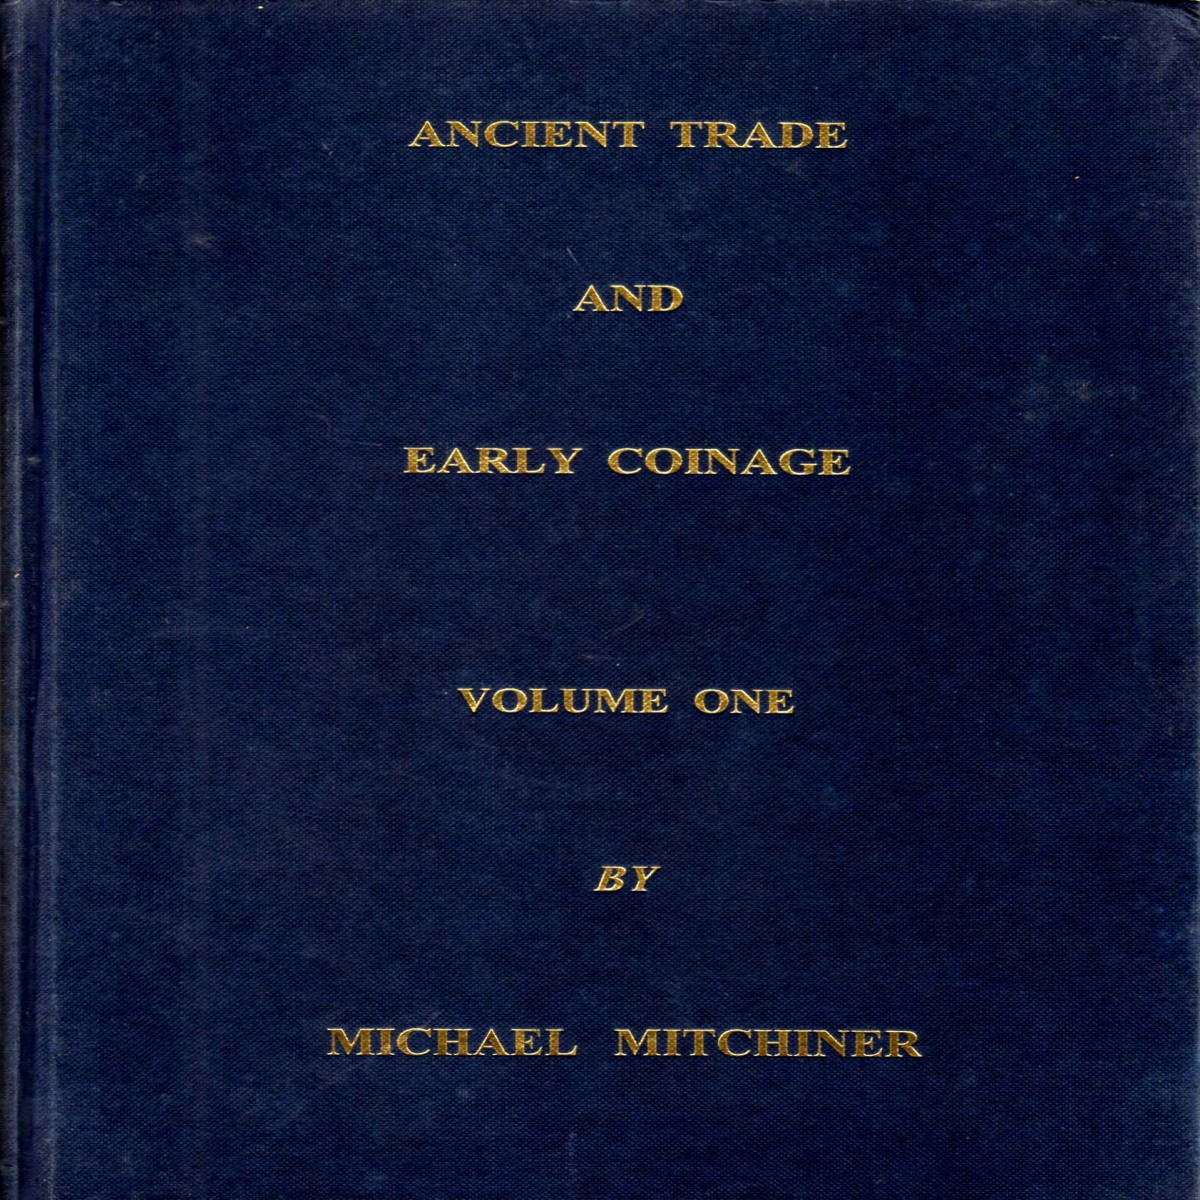 ANCIENT TRADE AND EARLY COINAGE Vols. 1 & 2